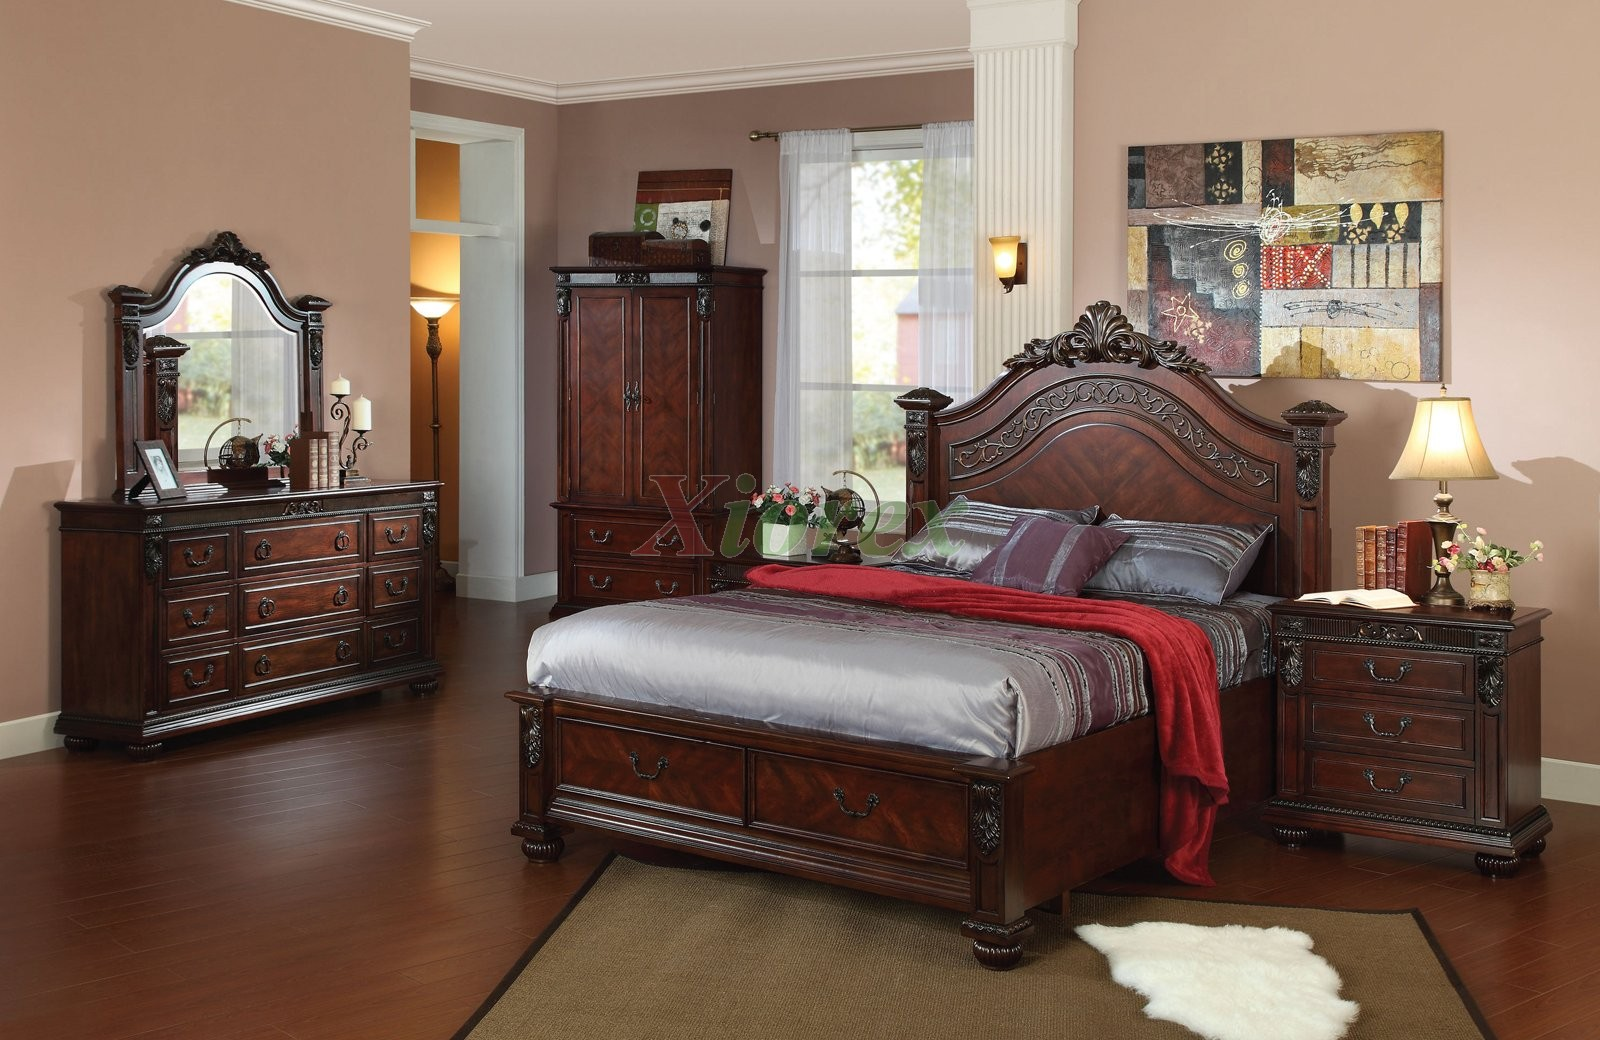 Bedroom Furniture Set 109 W Arched Headboard Queen Bed U0026 King Bed